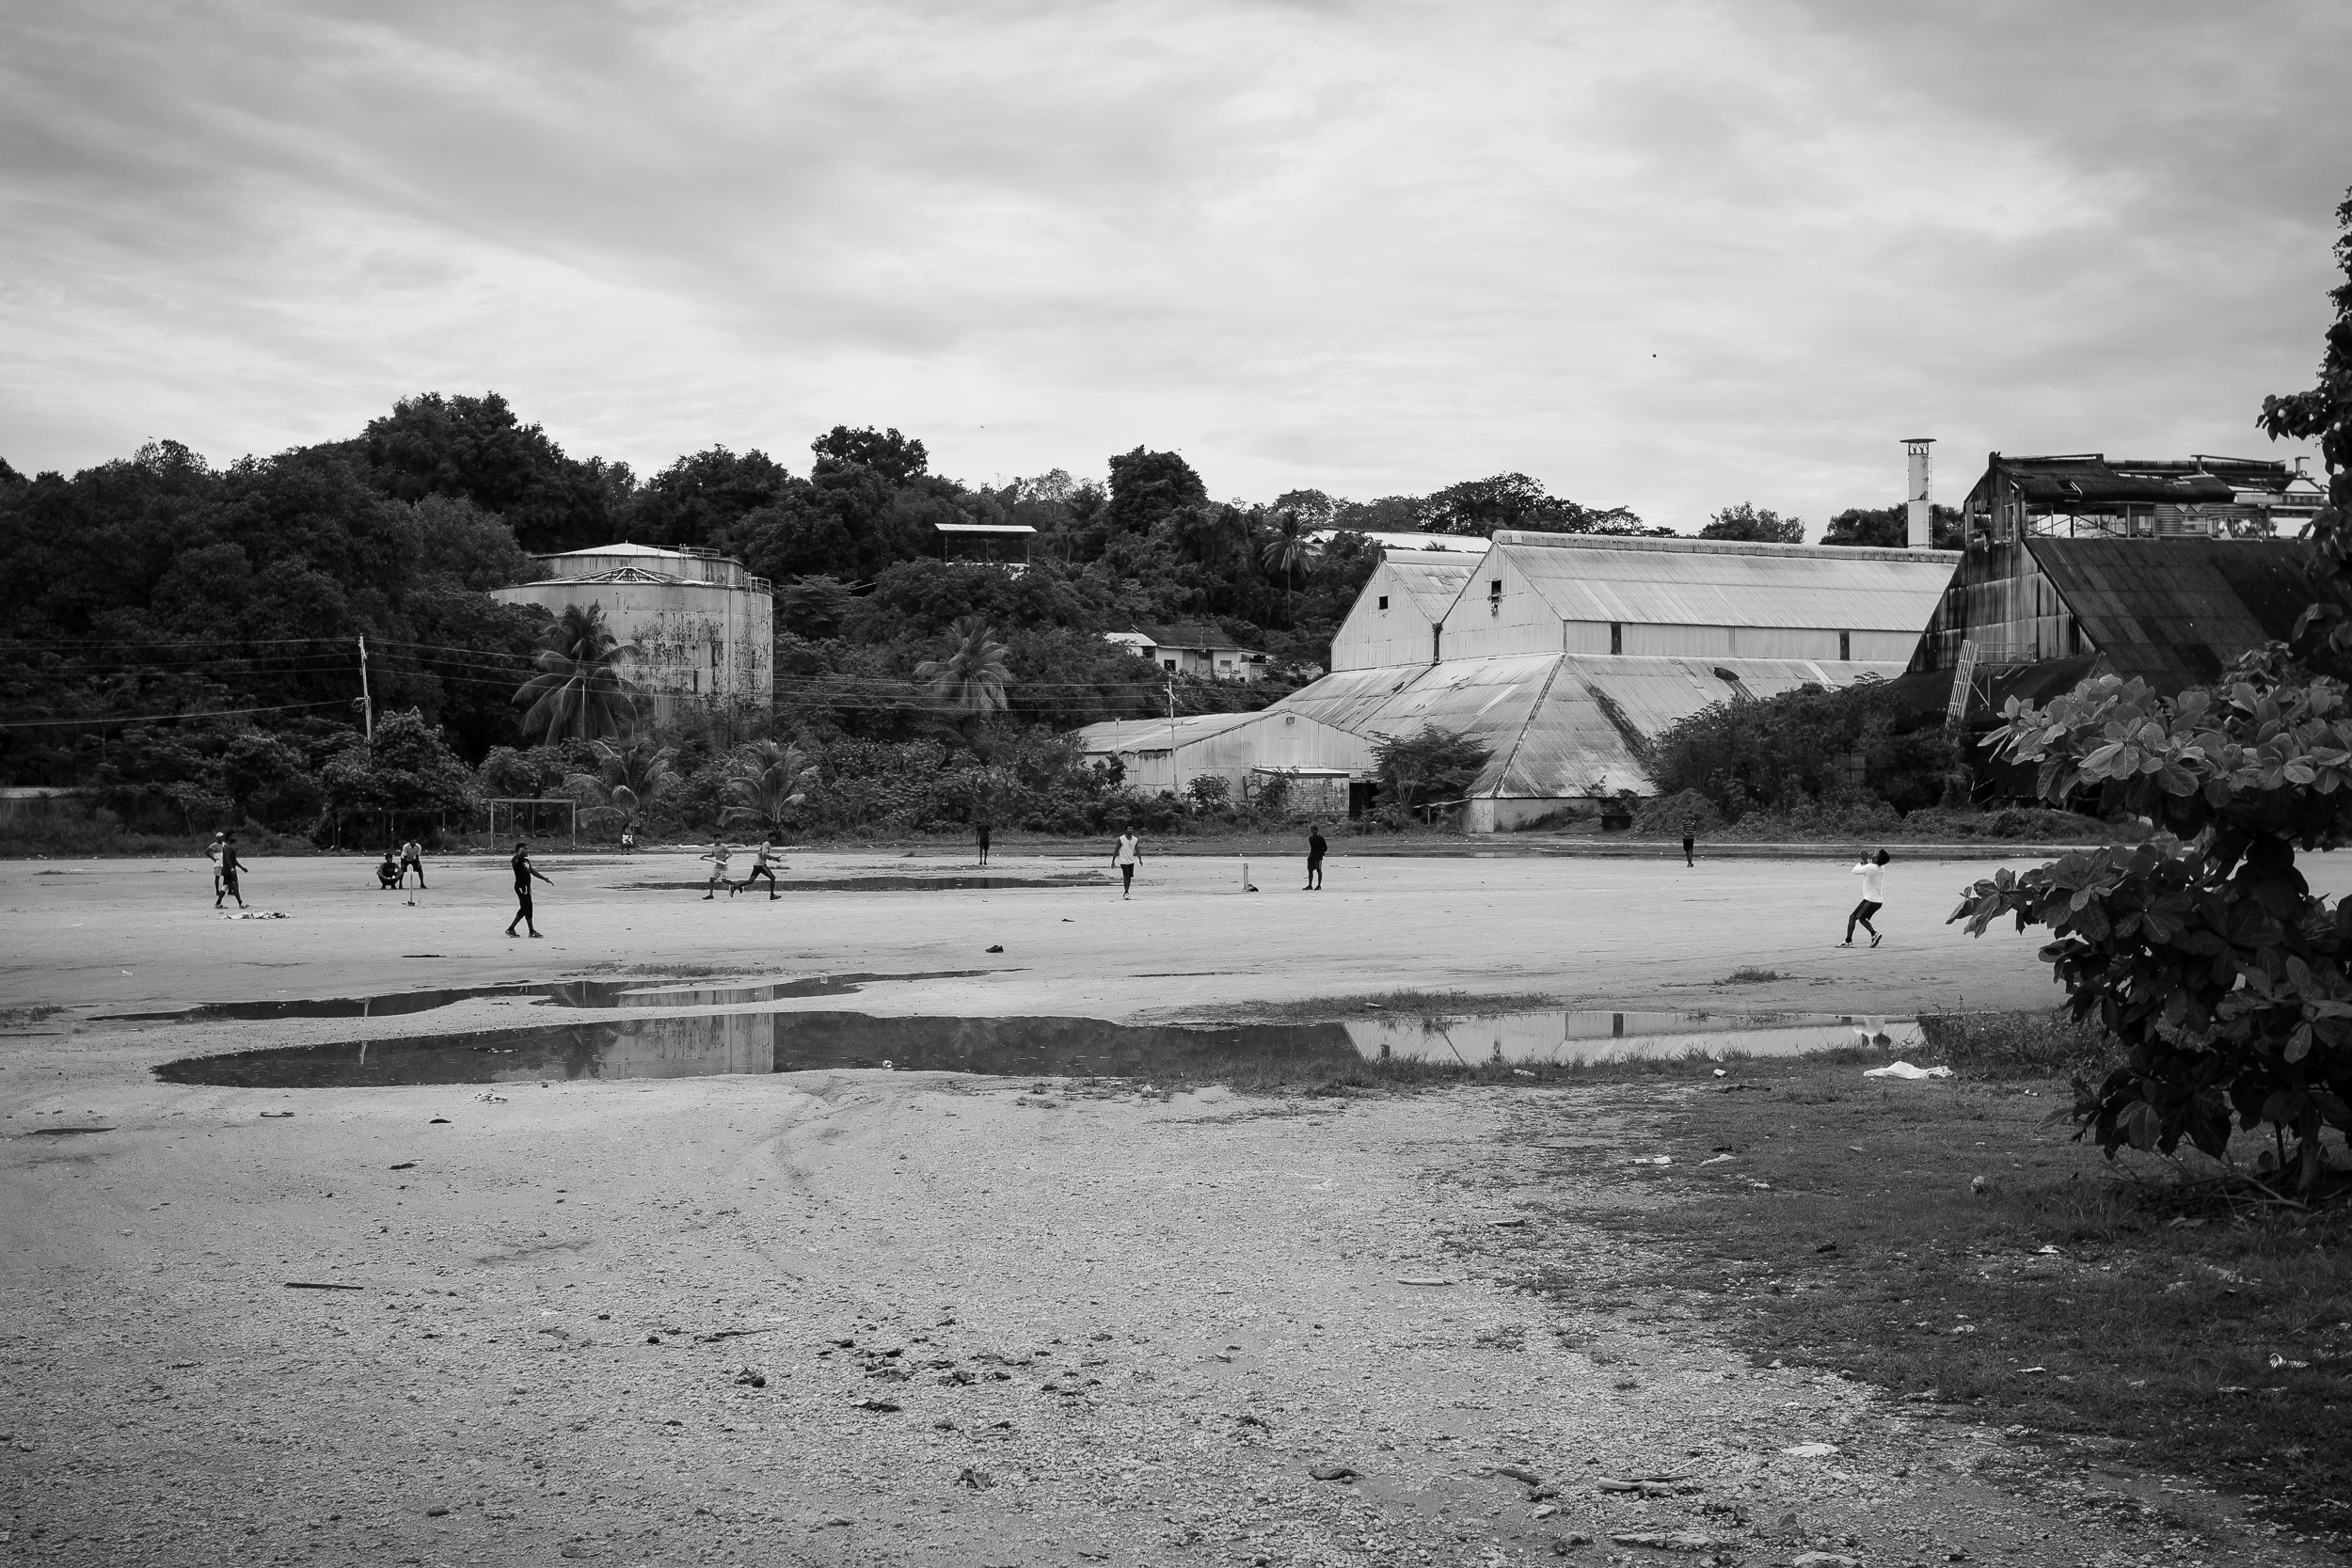 Tamil refugees play a game of cricket in Aiwo district. Refugees still held in detention can be taken out of the centres into the community, however are under constant watch from immigration officials.